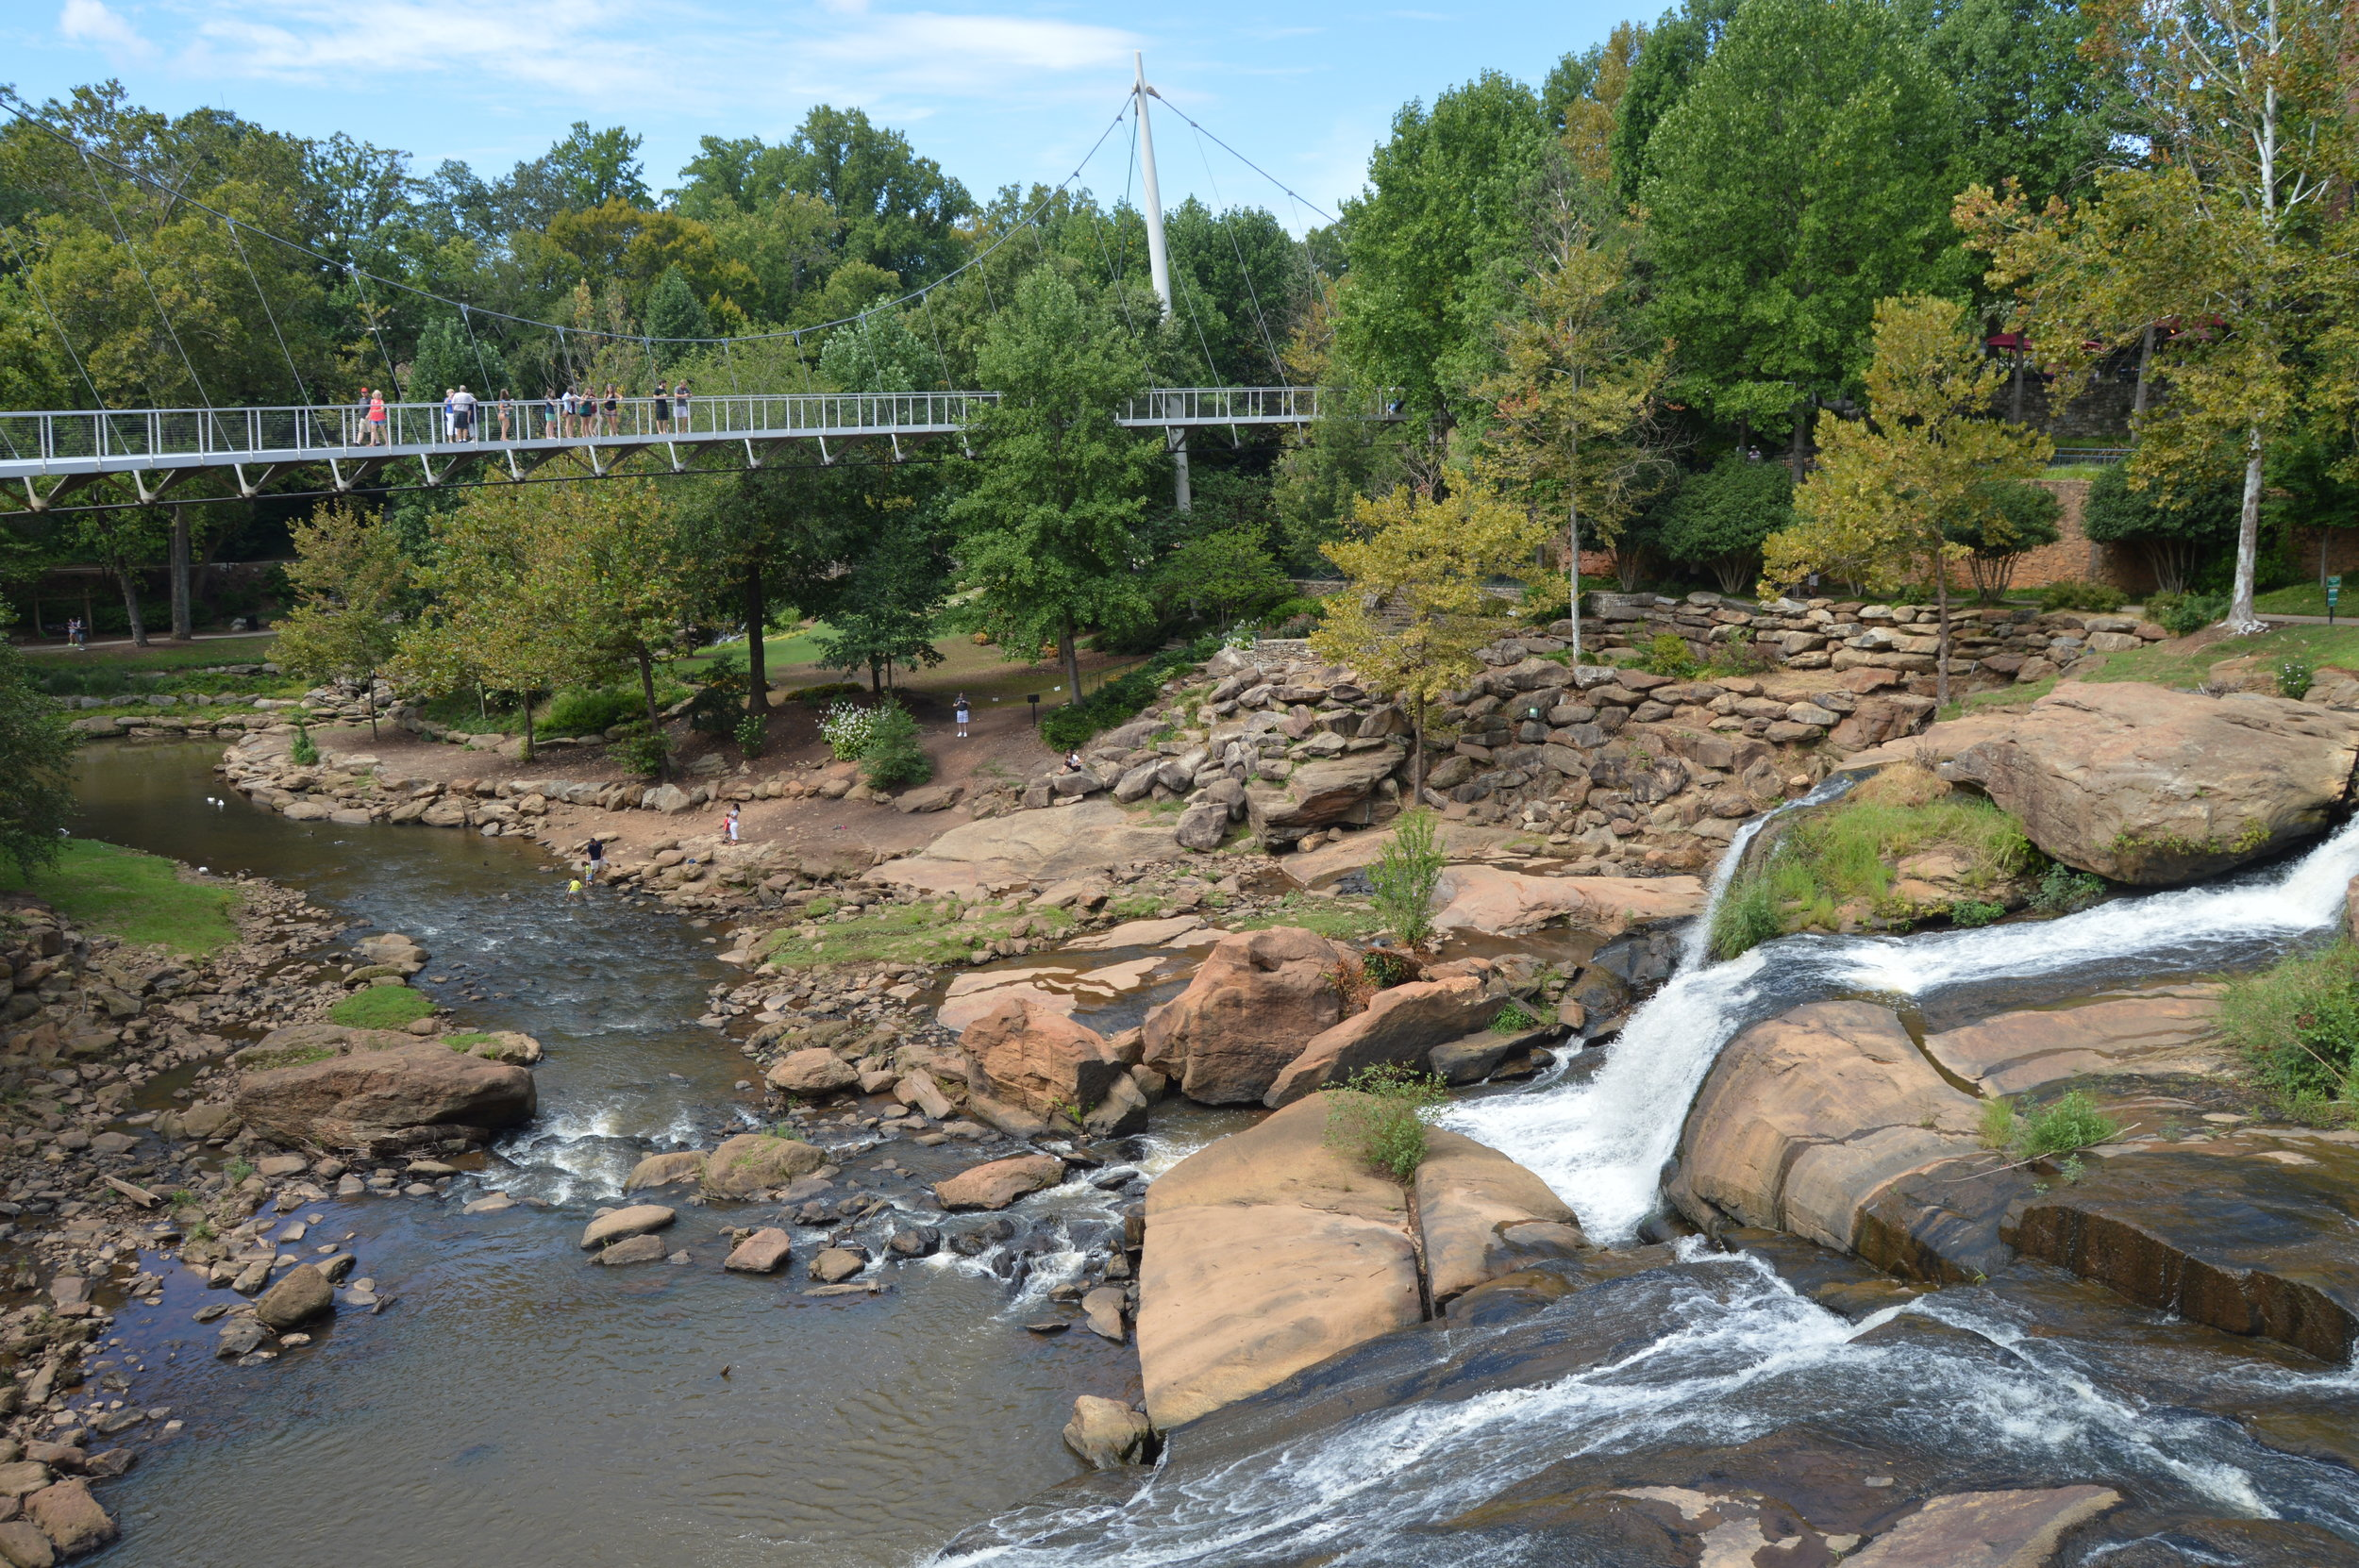 Greenville, South Carolina, home to Reedy River Falls and the Liberty Bridge, is about to get a taste of New Orleans as Euphoria throws a Big Easy Bash.